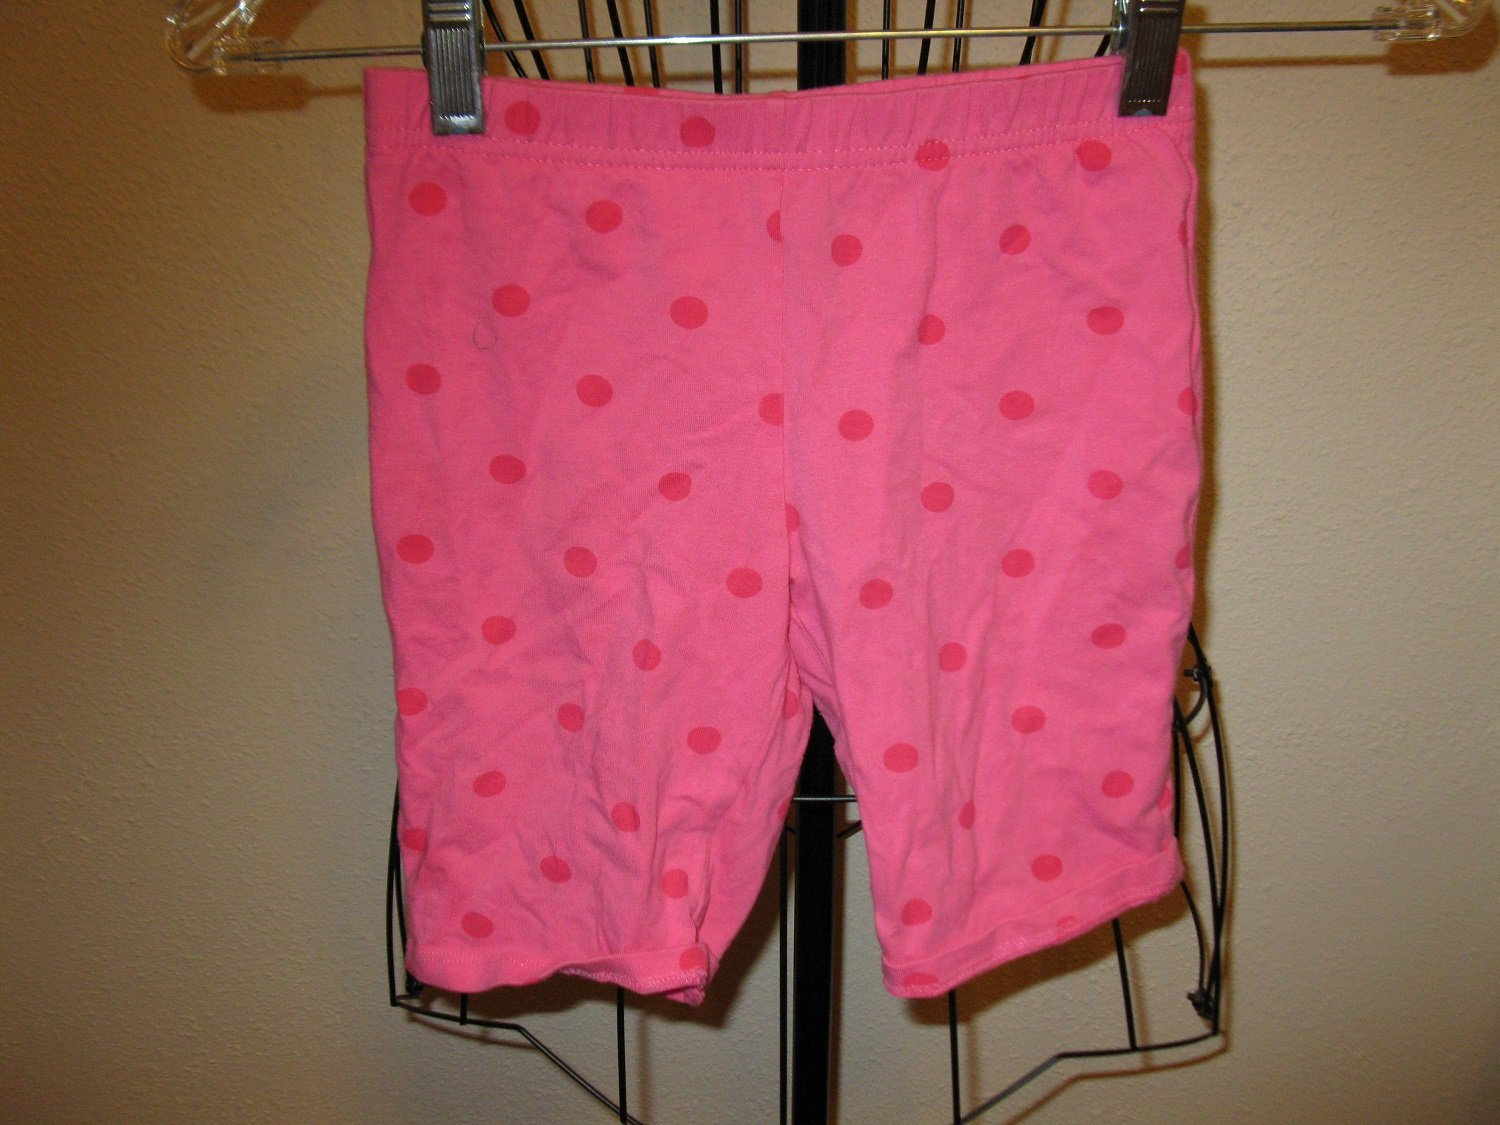 Pink Polka Dot Capri Shorts Girl Child Size M (7-8) Nice! #X257